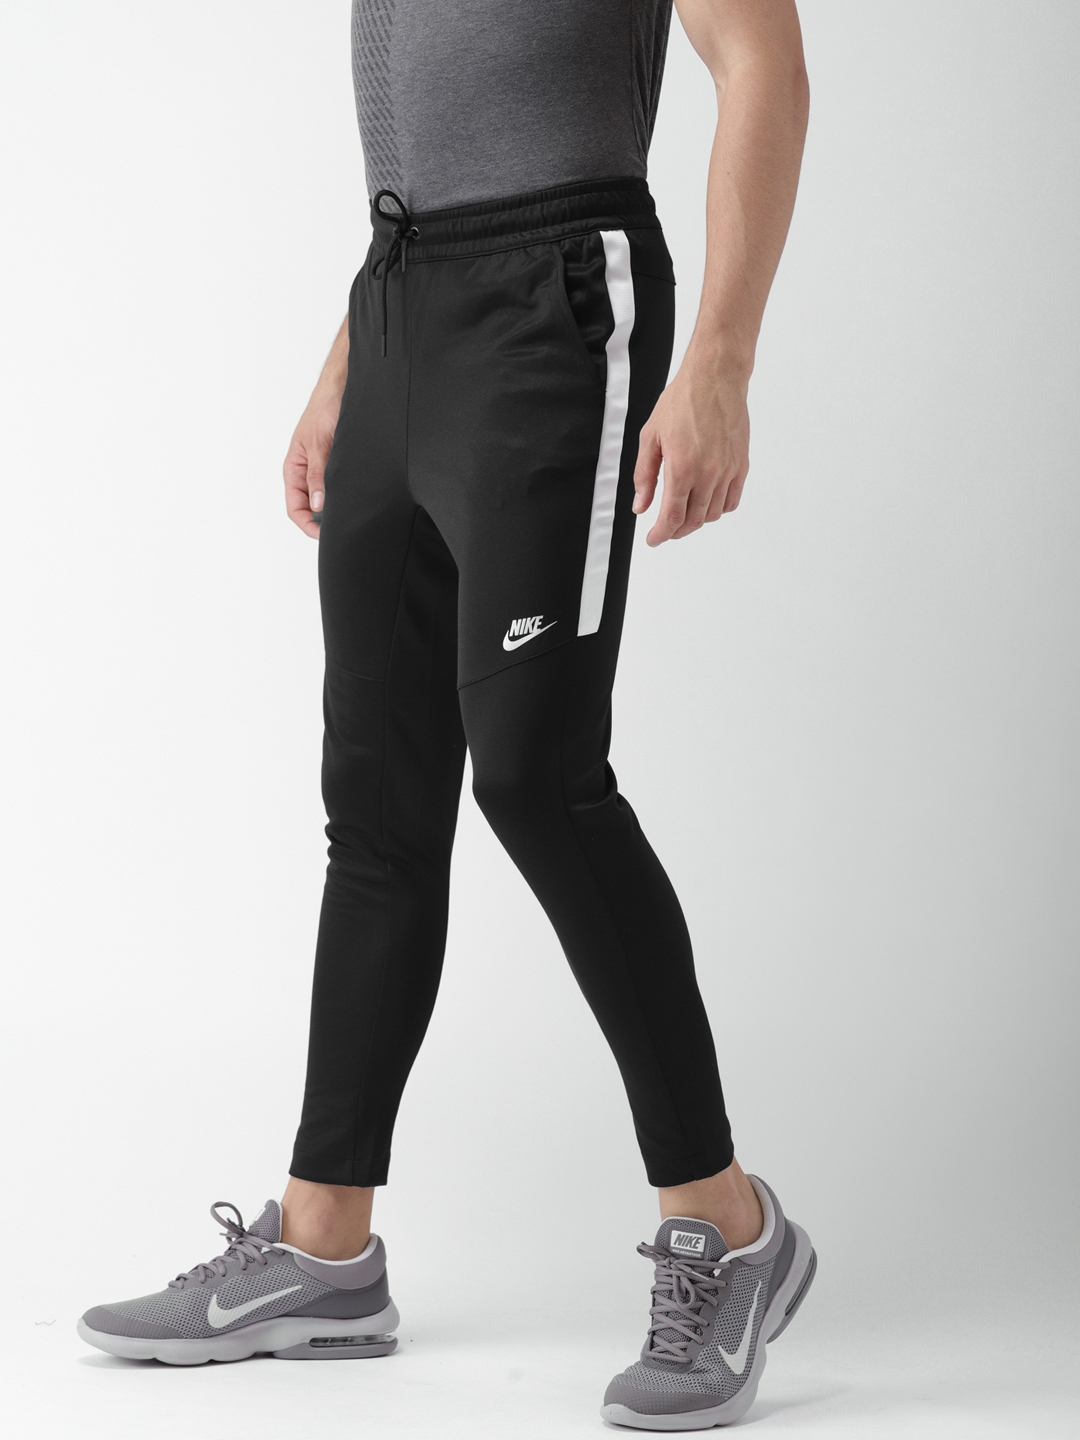 84d075a6ad Buy Nike Men Black PK TRIBUTE Solid Track Pants - Track Pants for ...